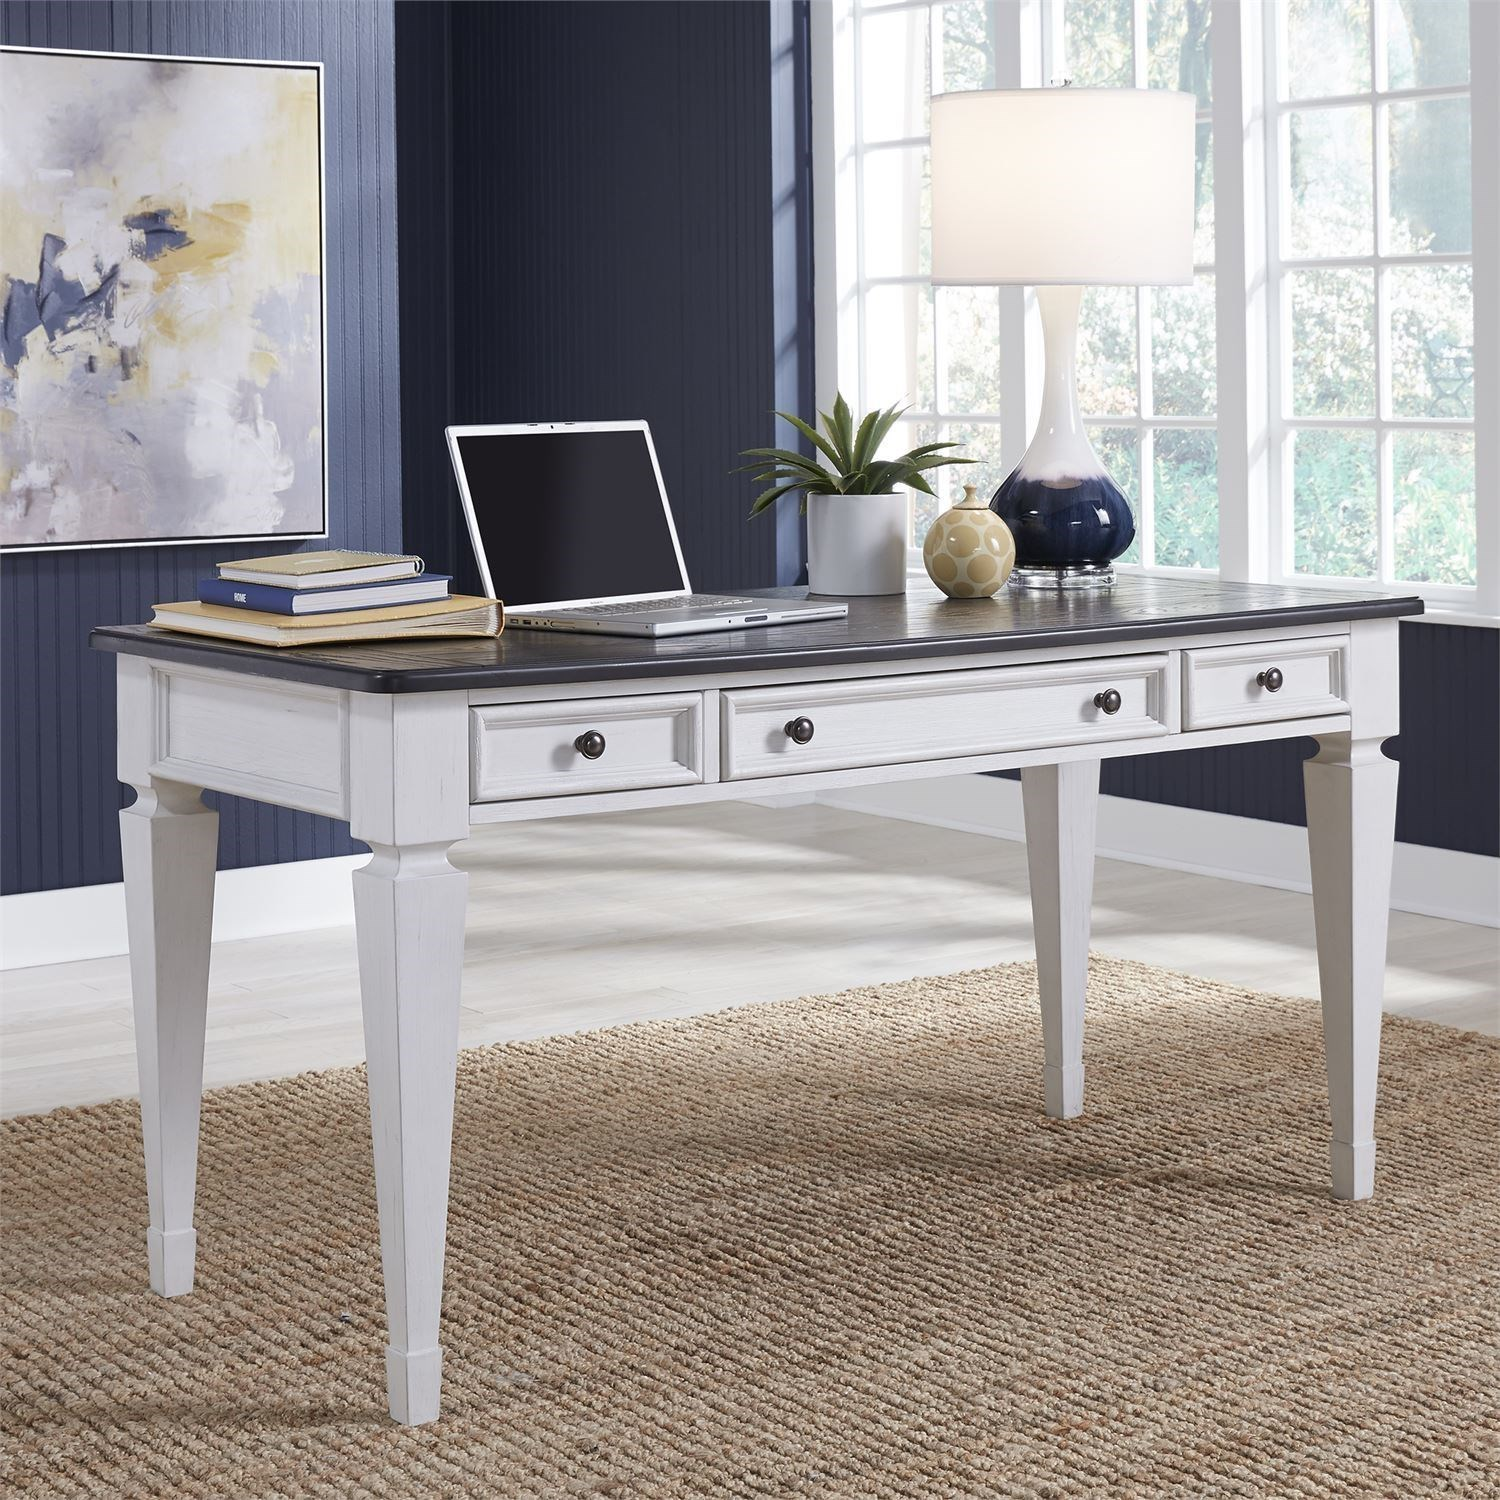 Transitional Two-Toned Writing Desk